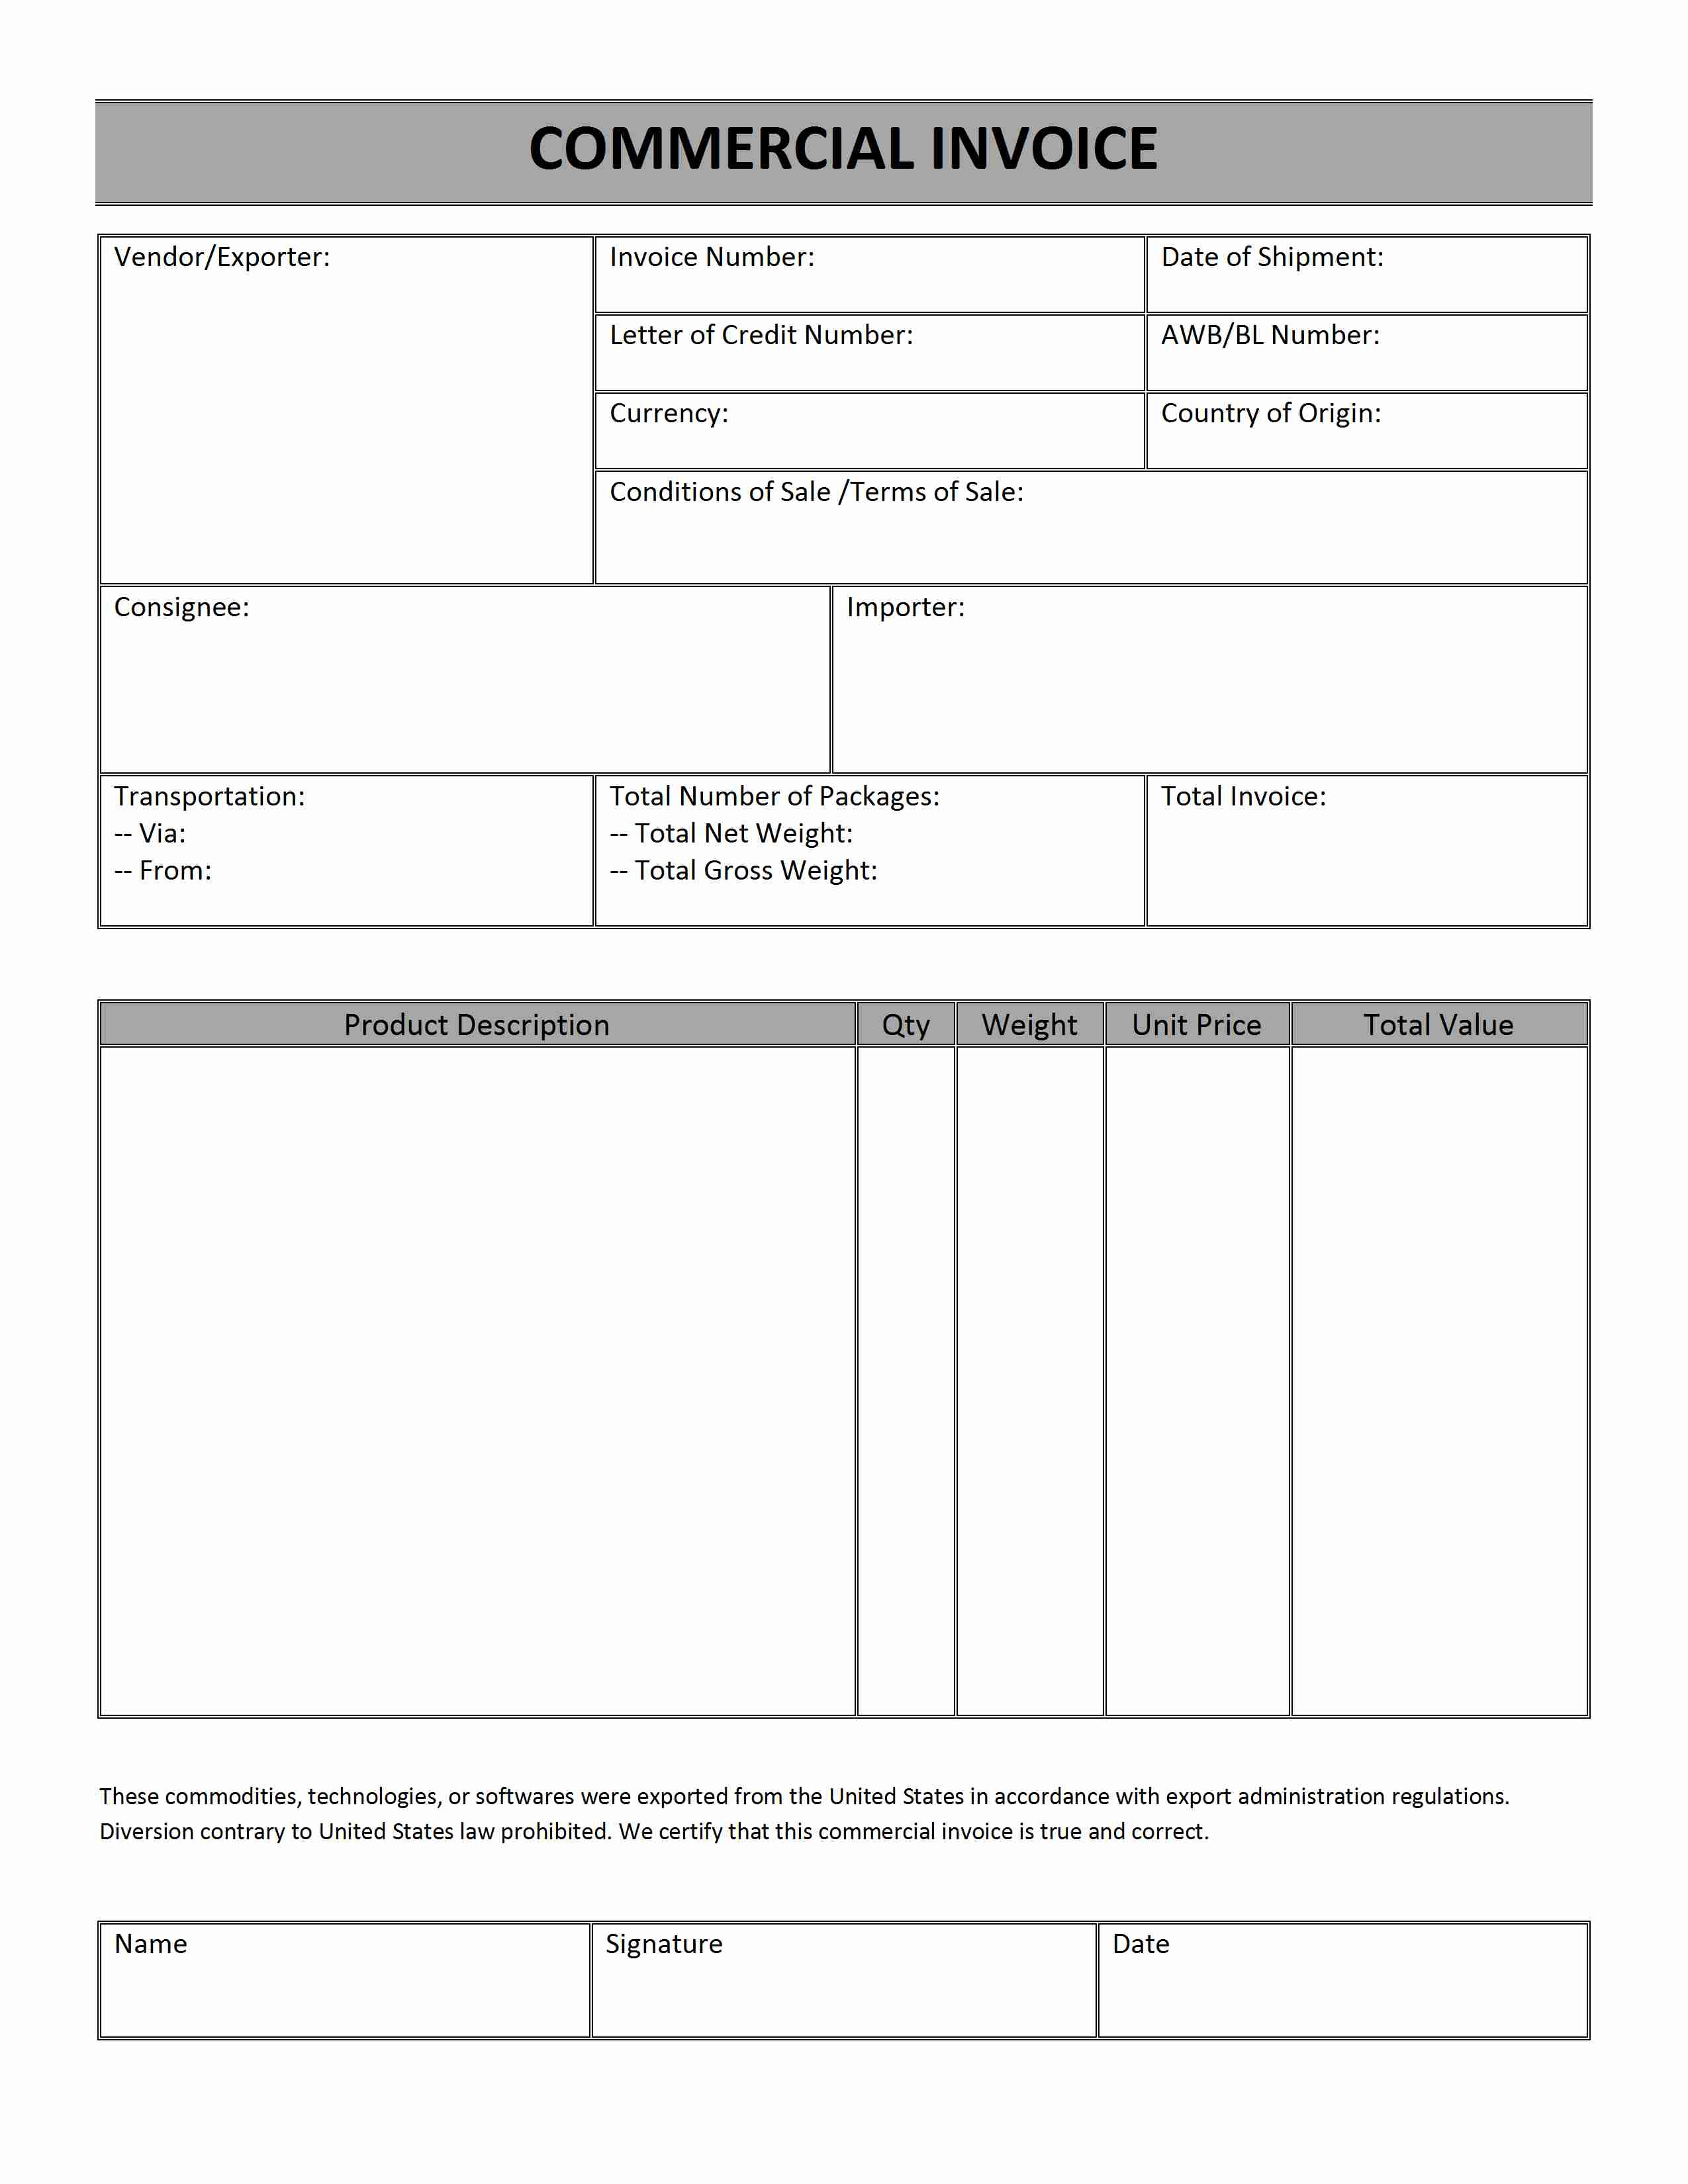 Angkajituus  Personable Printable Sales Invoice Simple Invoice Form Free Invoice  With Interesting Printable Receipt Free  Free Printable Raffle Tickets  Receipt   Printable With Astonishing How To Find Tracking Number On Post Office Receipt Also Definition Of Cash Receipts In Addition Receipt Book Format And No Receipts For Tax Return As Well As Printable Sales Receipts Additionally Receipt Template In Word From Happytomco With Angkajituus  Interesting Printable Sales Invoice Simple Invoice Form Free Invoice  With Astonishing Printable Receipt Free  Free Printable Raffle Tickets  Receipt   Printable And Personable How To Find Tracking Number On Post Office Receipt Also Definition Of Cash Receipts In Addition Receipt Book Format From Happytomco